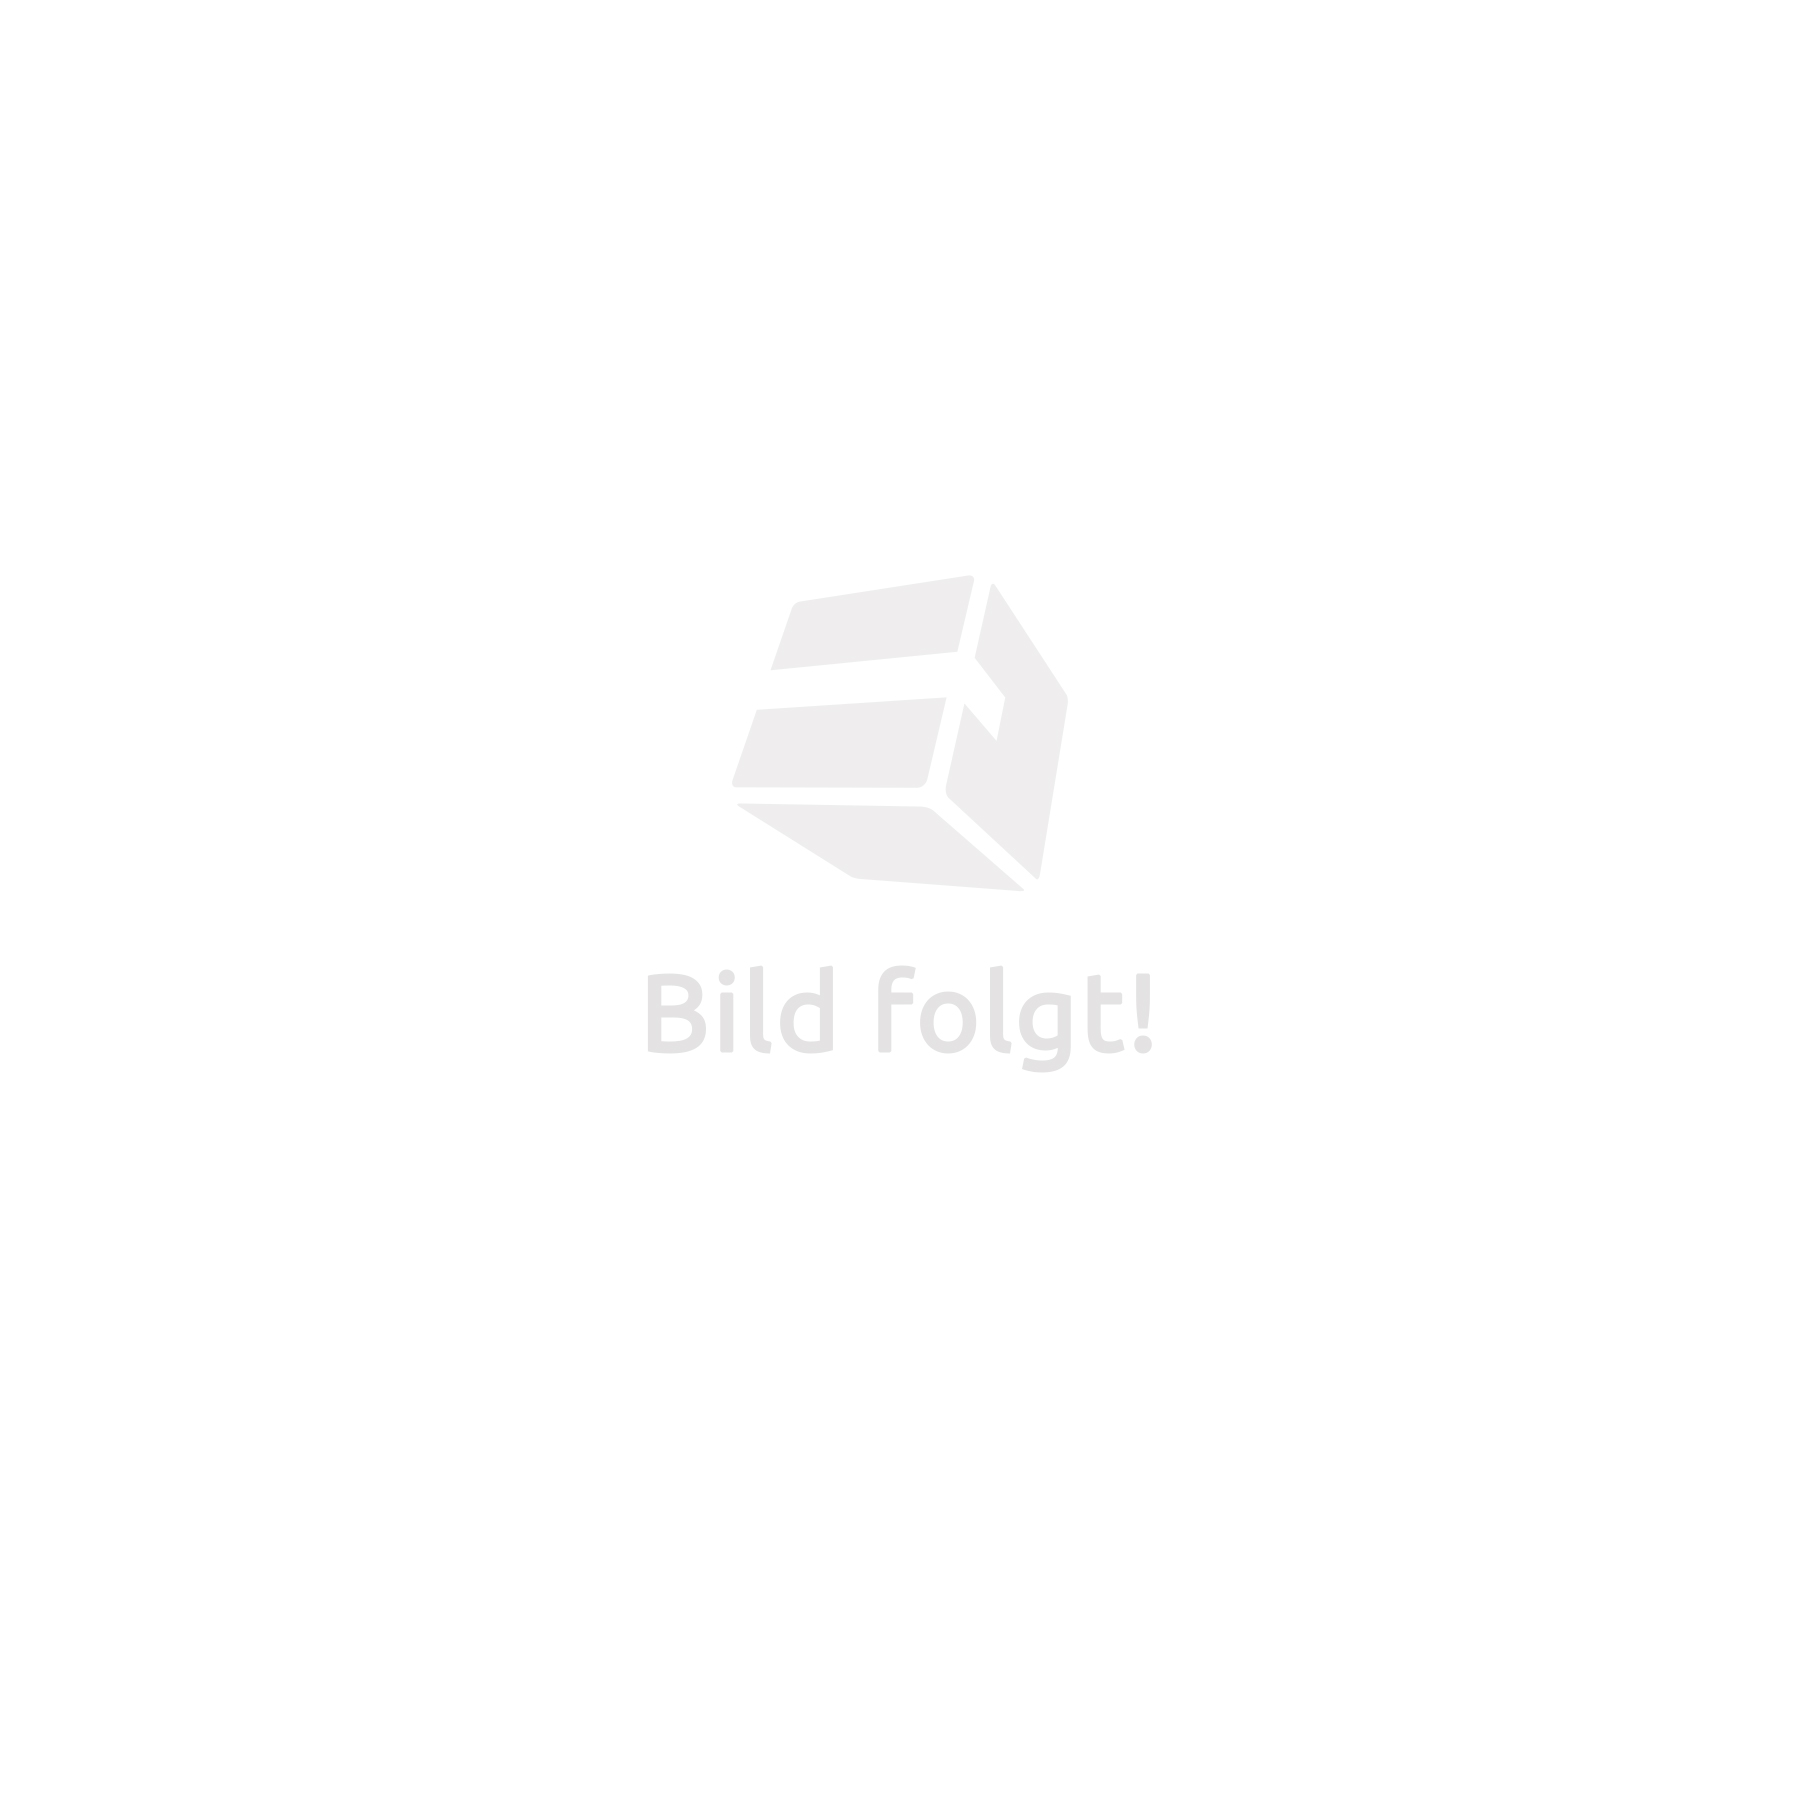 chaise de camping avec housse pliante fauteuil de camping pliable siege de plage ebay. Black Bedroom Furniture Sets. Home Design Ideas